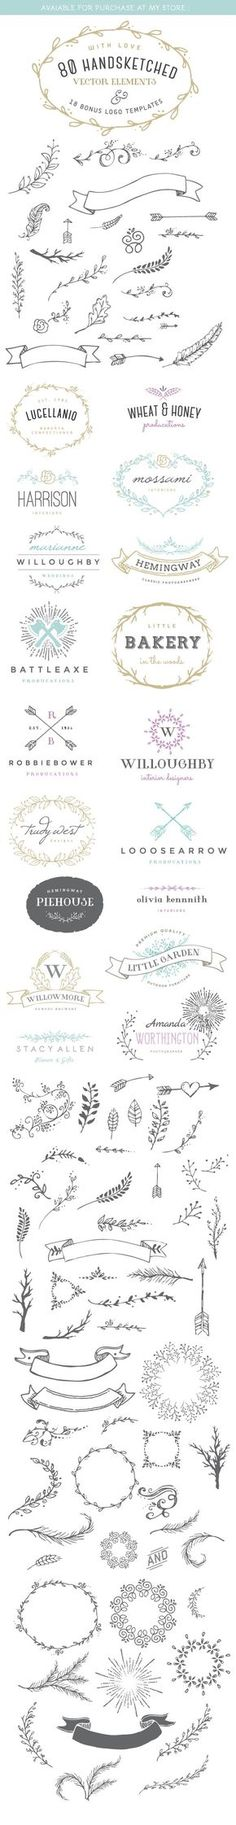 80 Handsketched Vector Elements and Logo templates on Behance